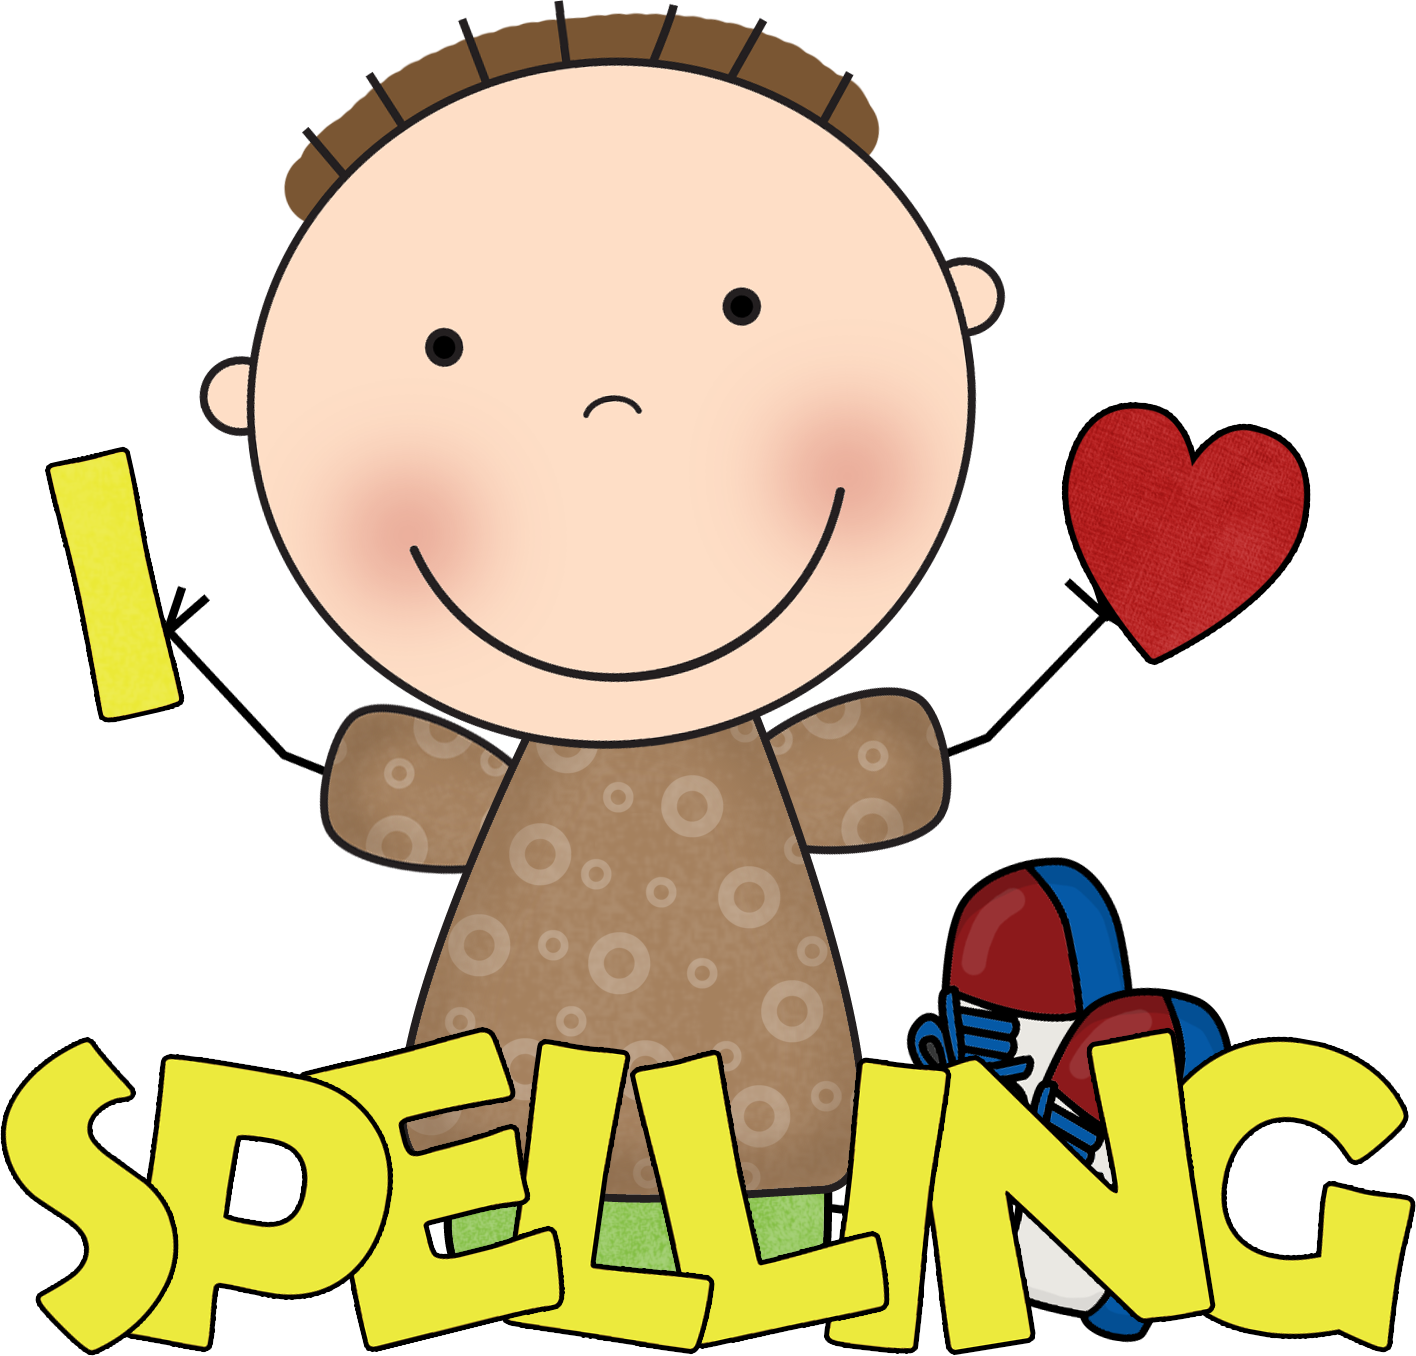 Free Spelling Words Cliparts, Download Free Clip Art, Free.